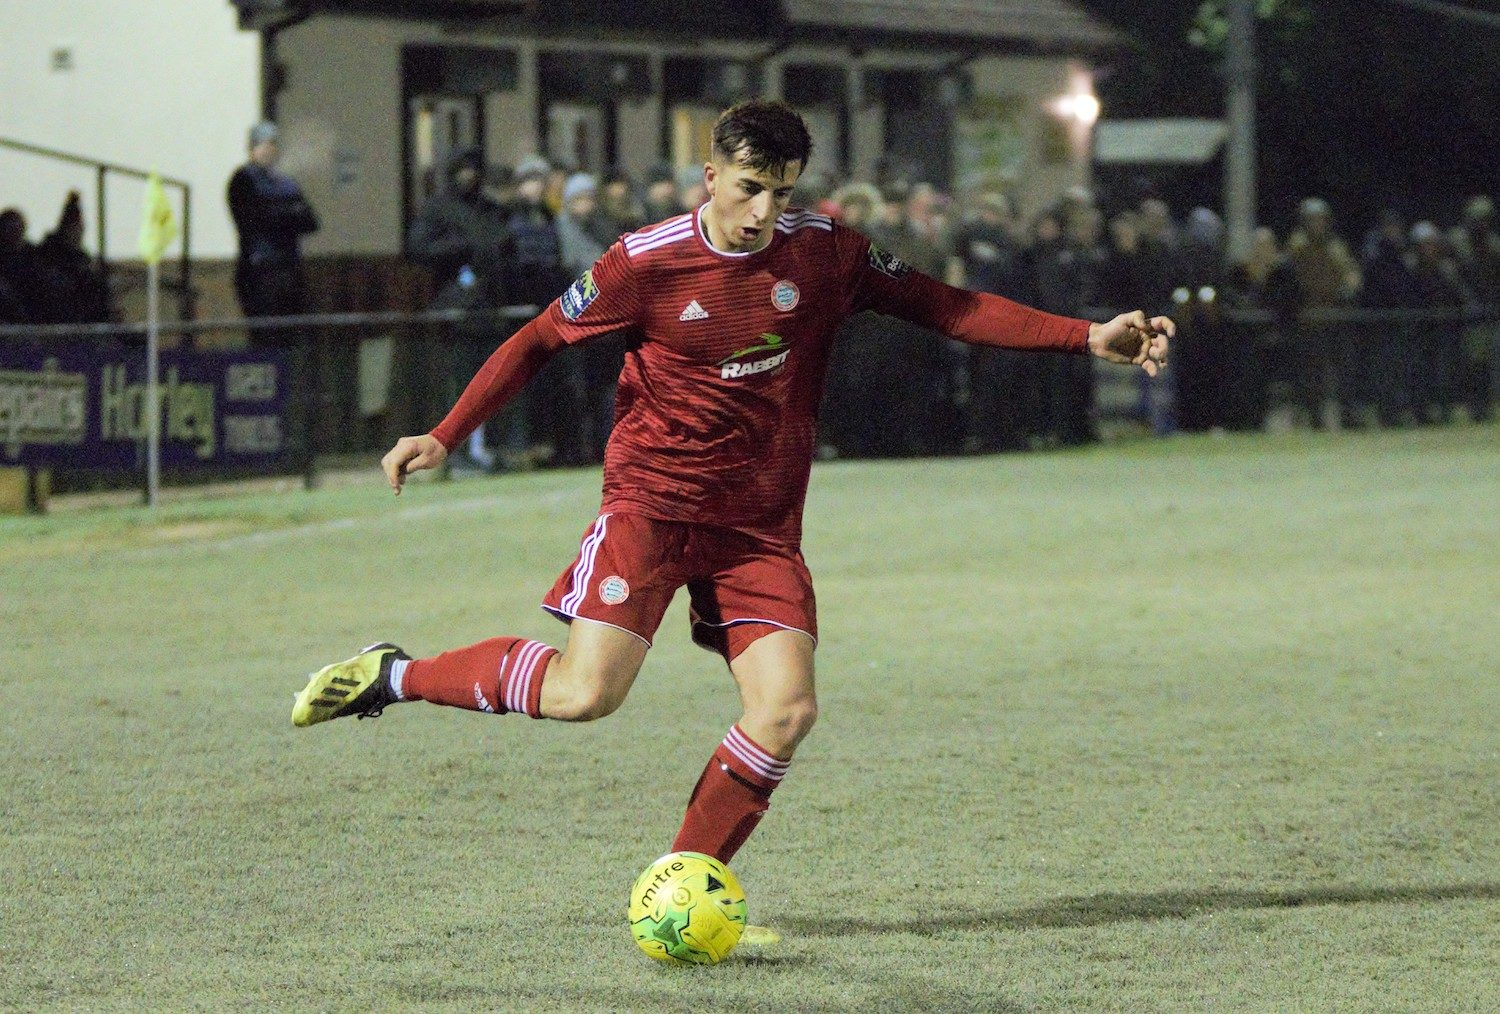 Gallery: Merstham [A] – League